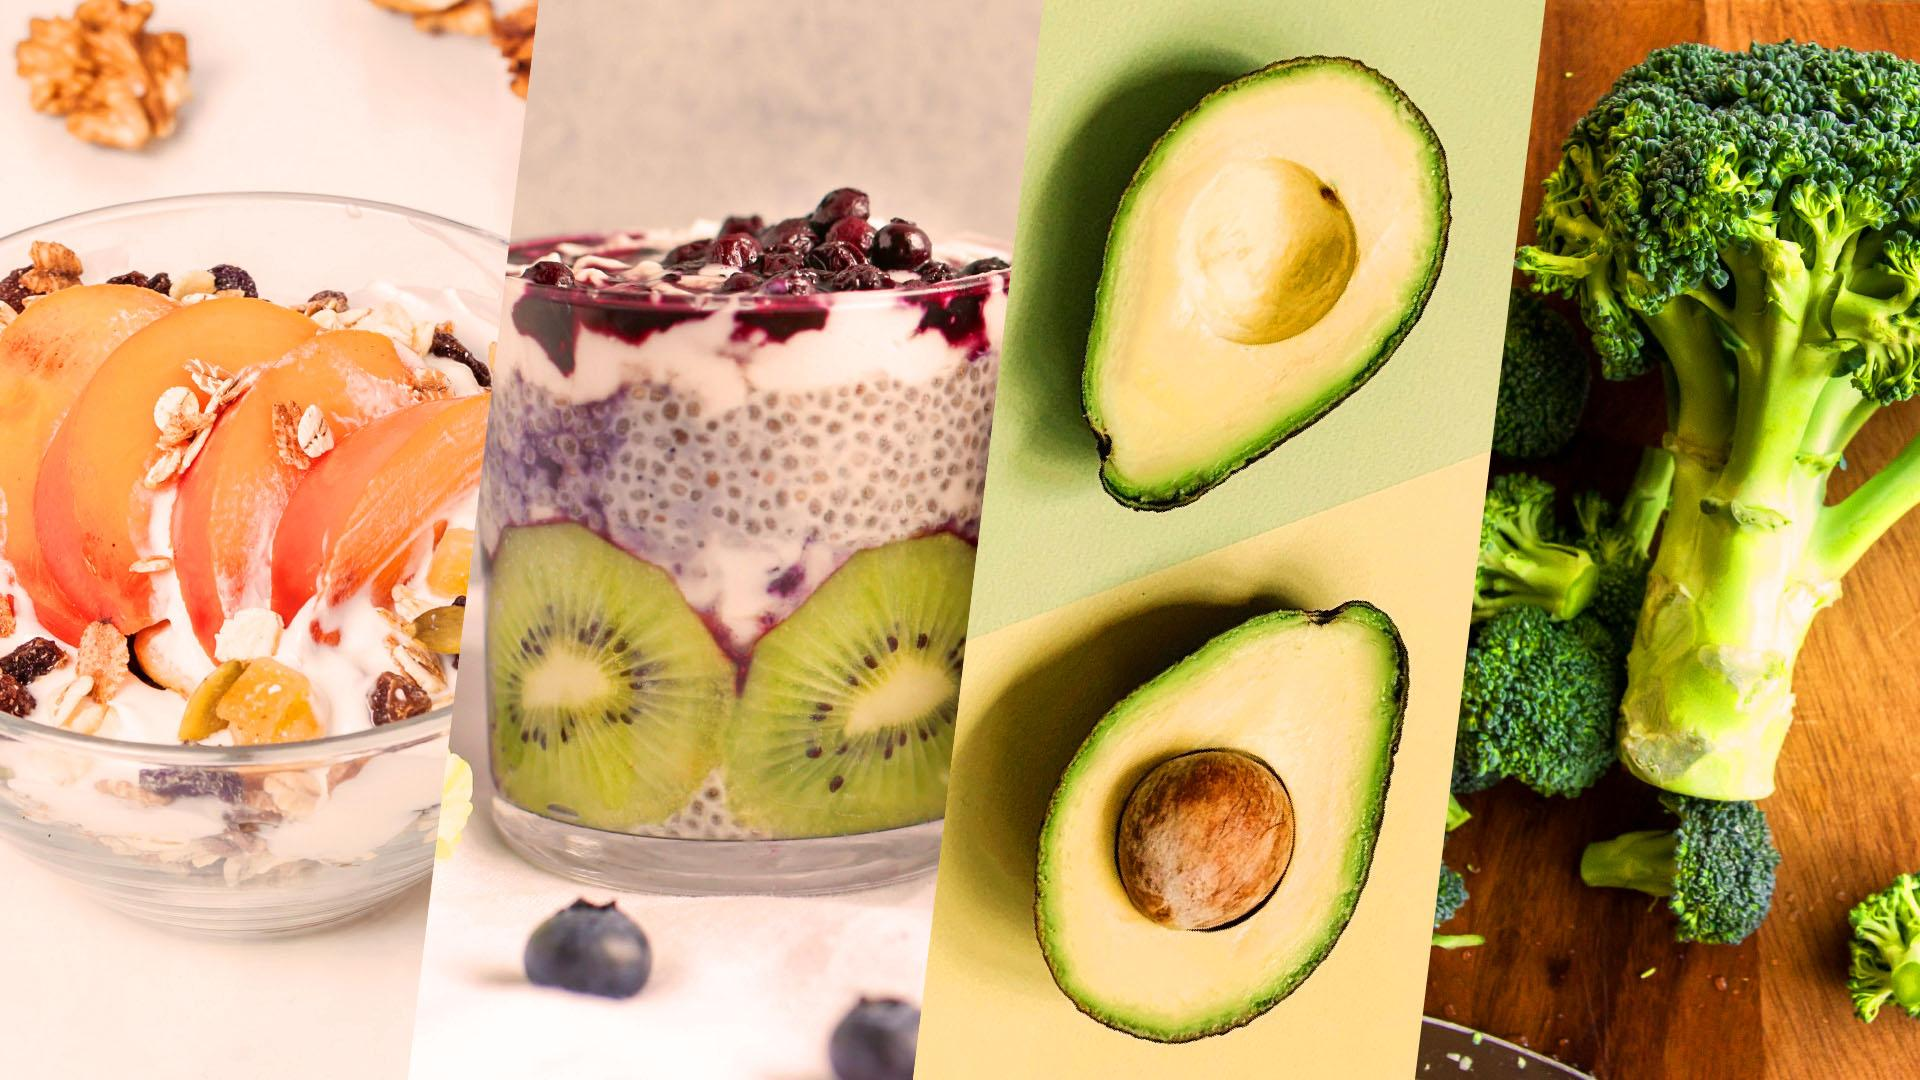 Anti-aging foods to keep skin youthful